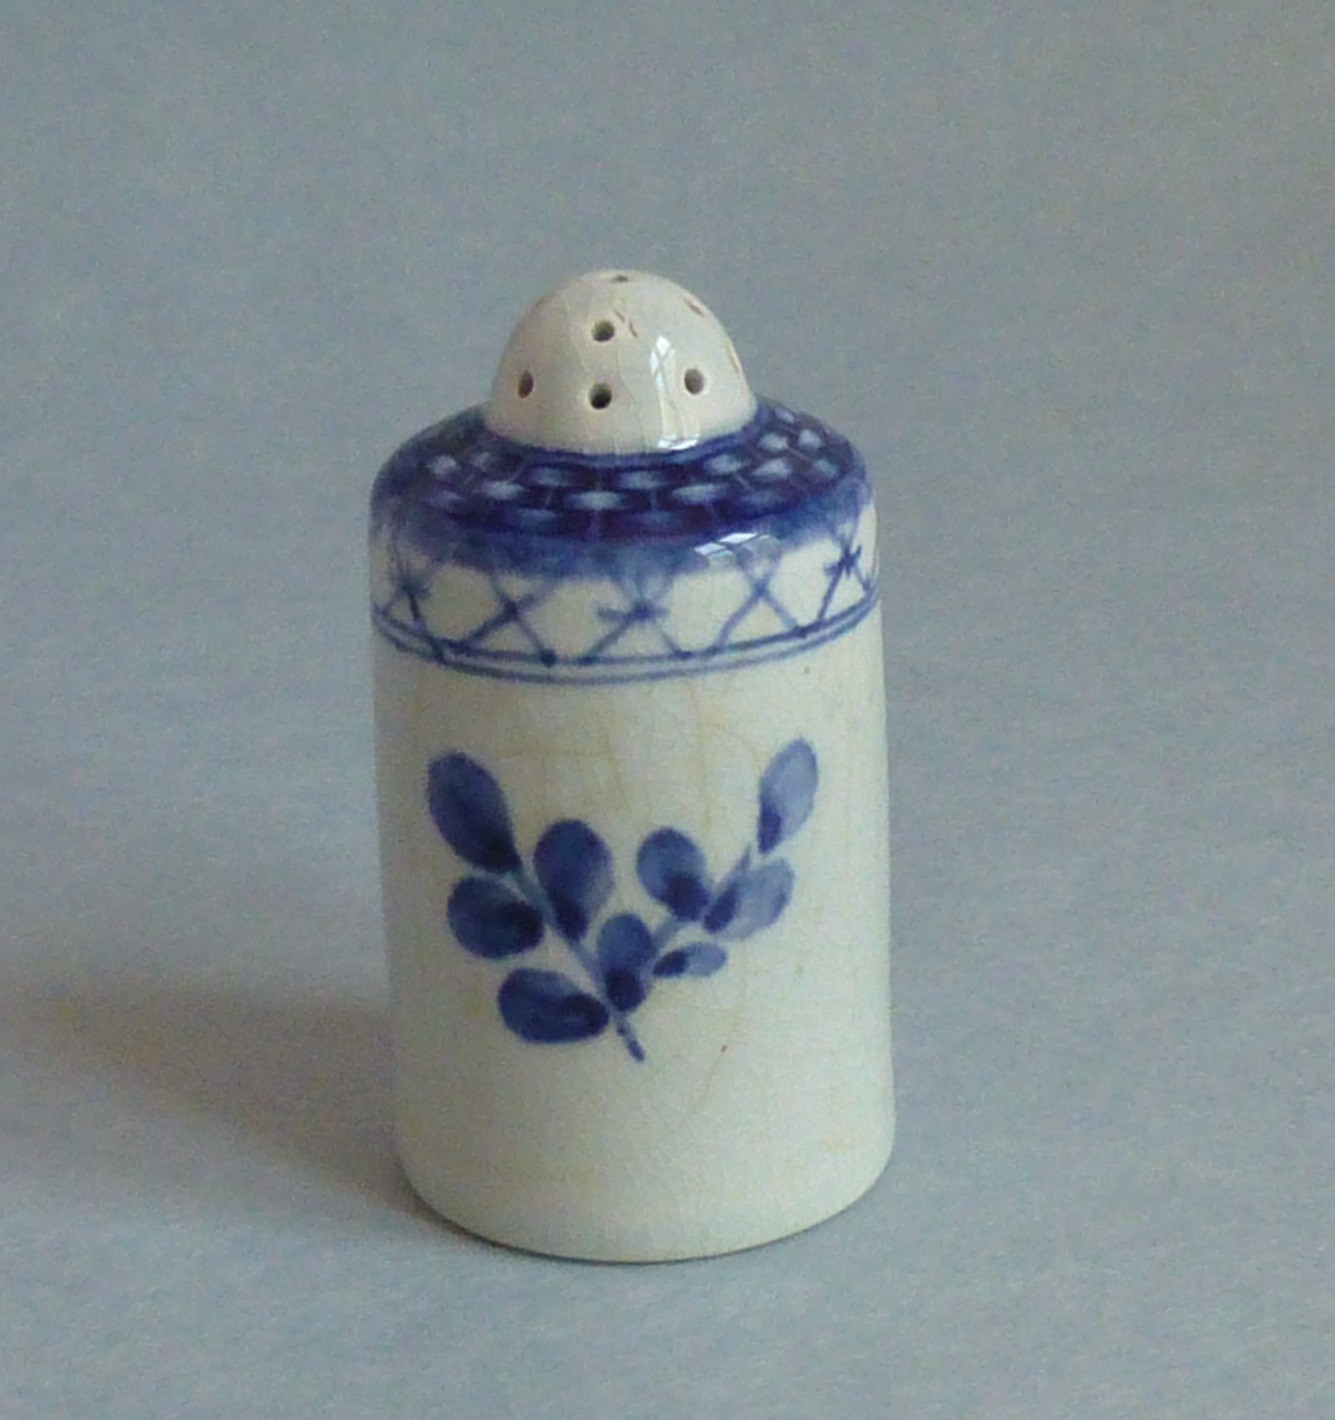 Vintage Ucagco Ceramics Japan Vase Of All Products In Regarding Click to View Image